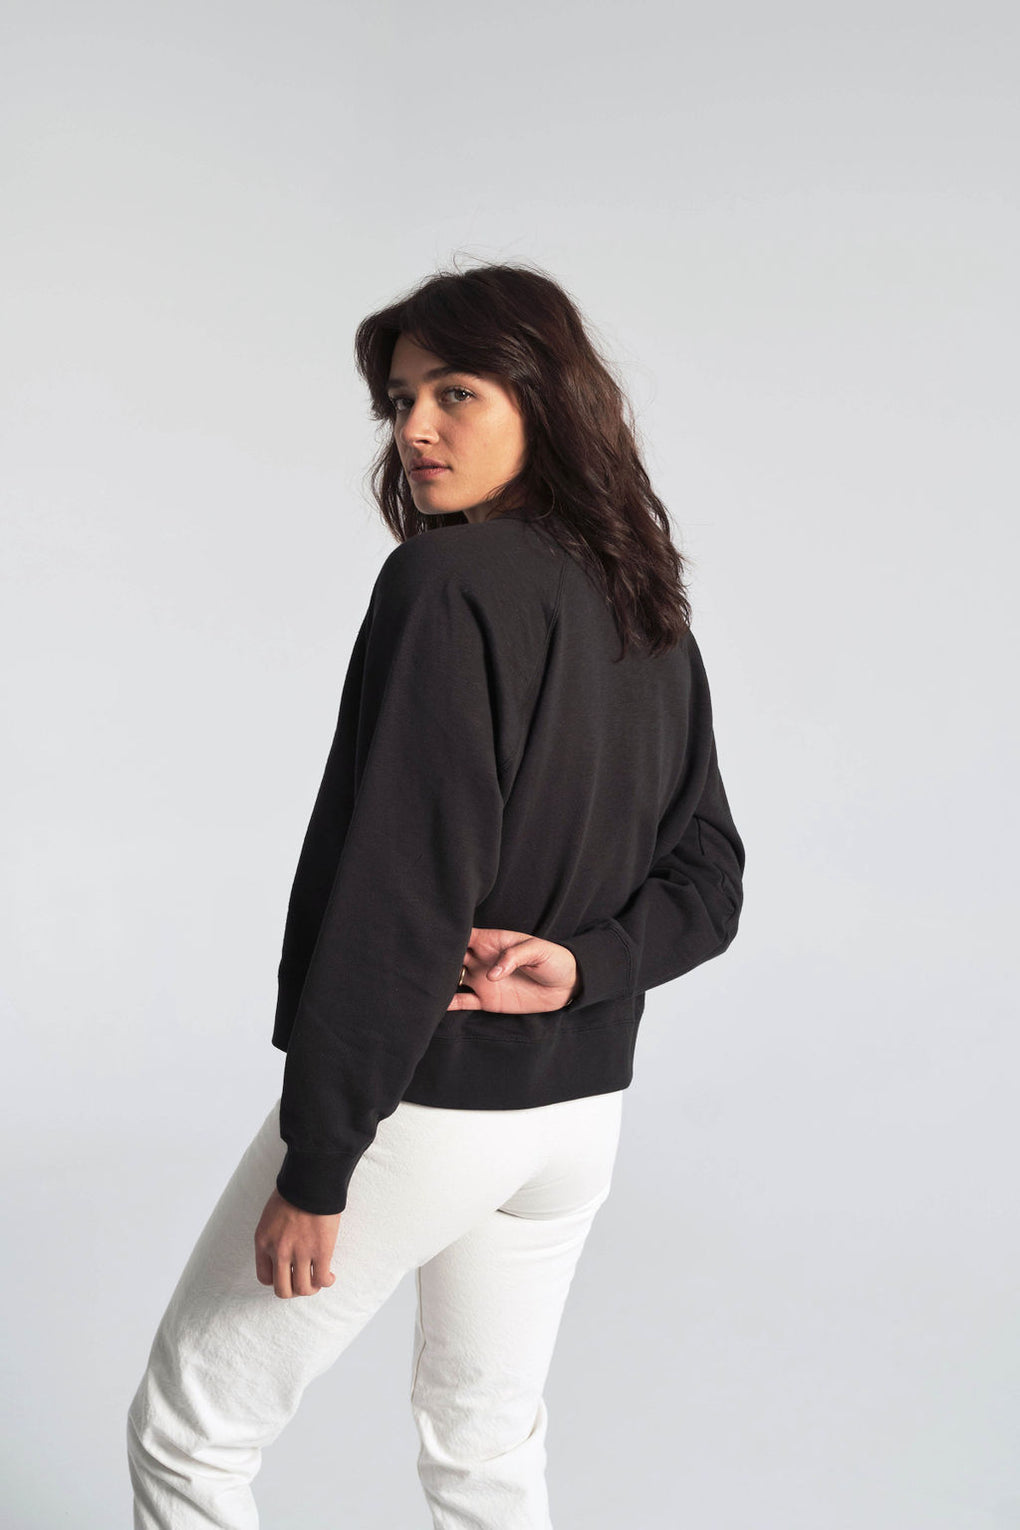 Jerri Sweatshirt in Black